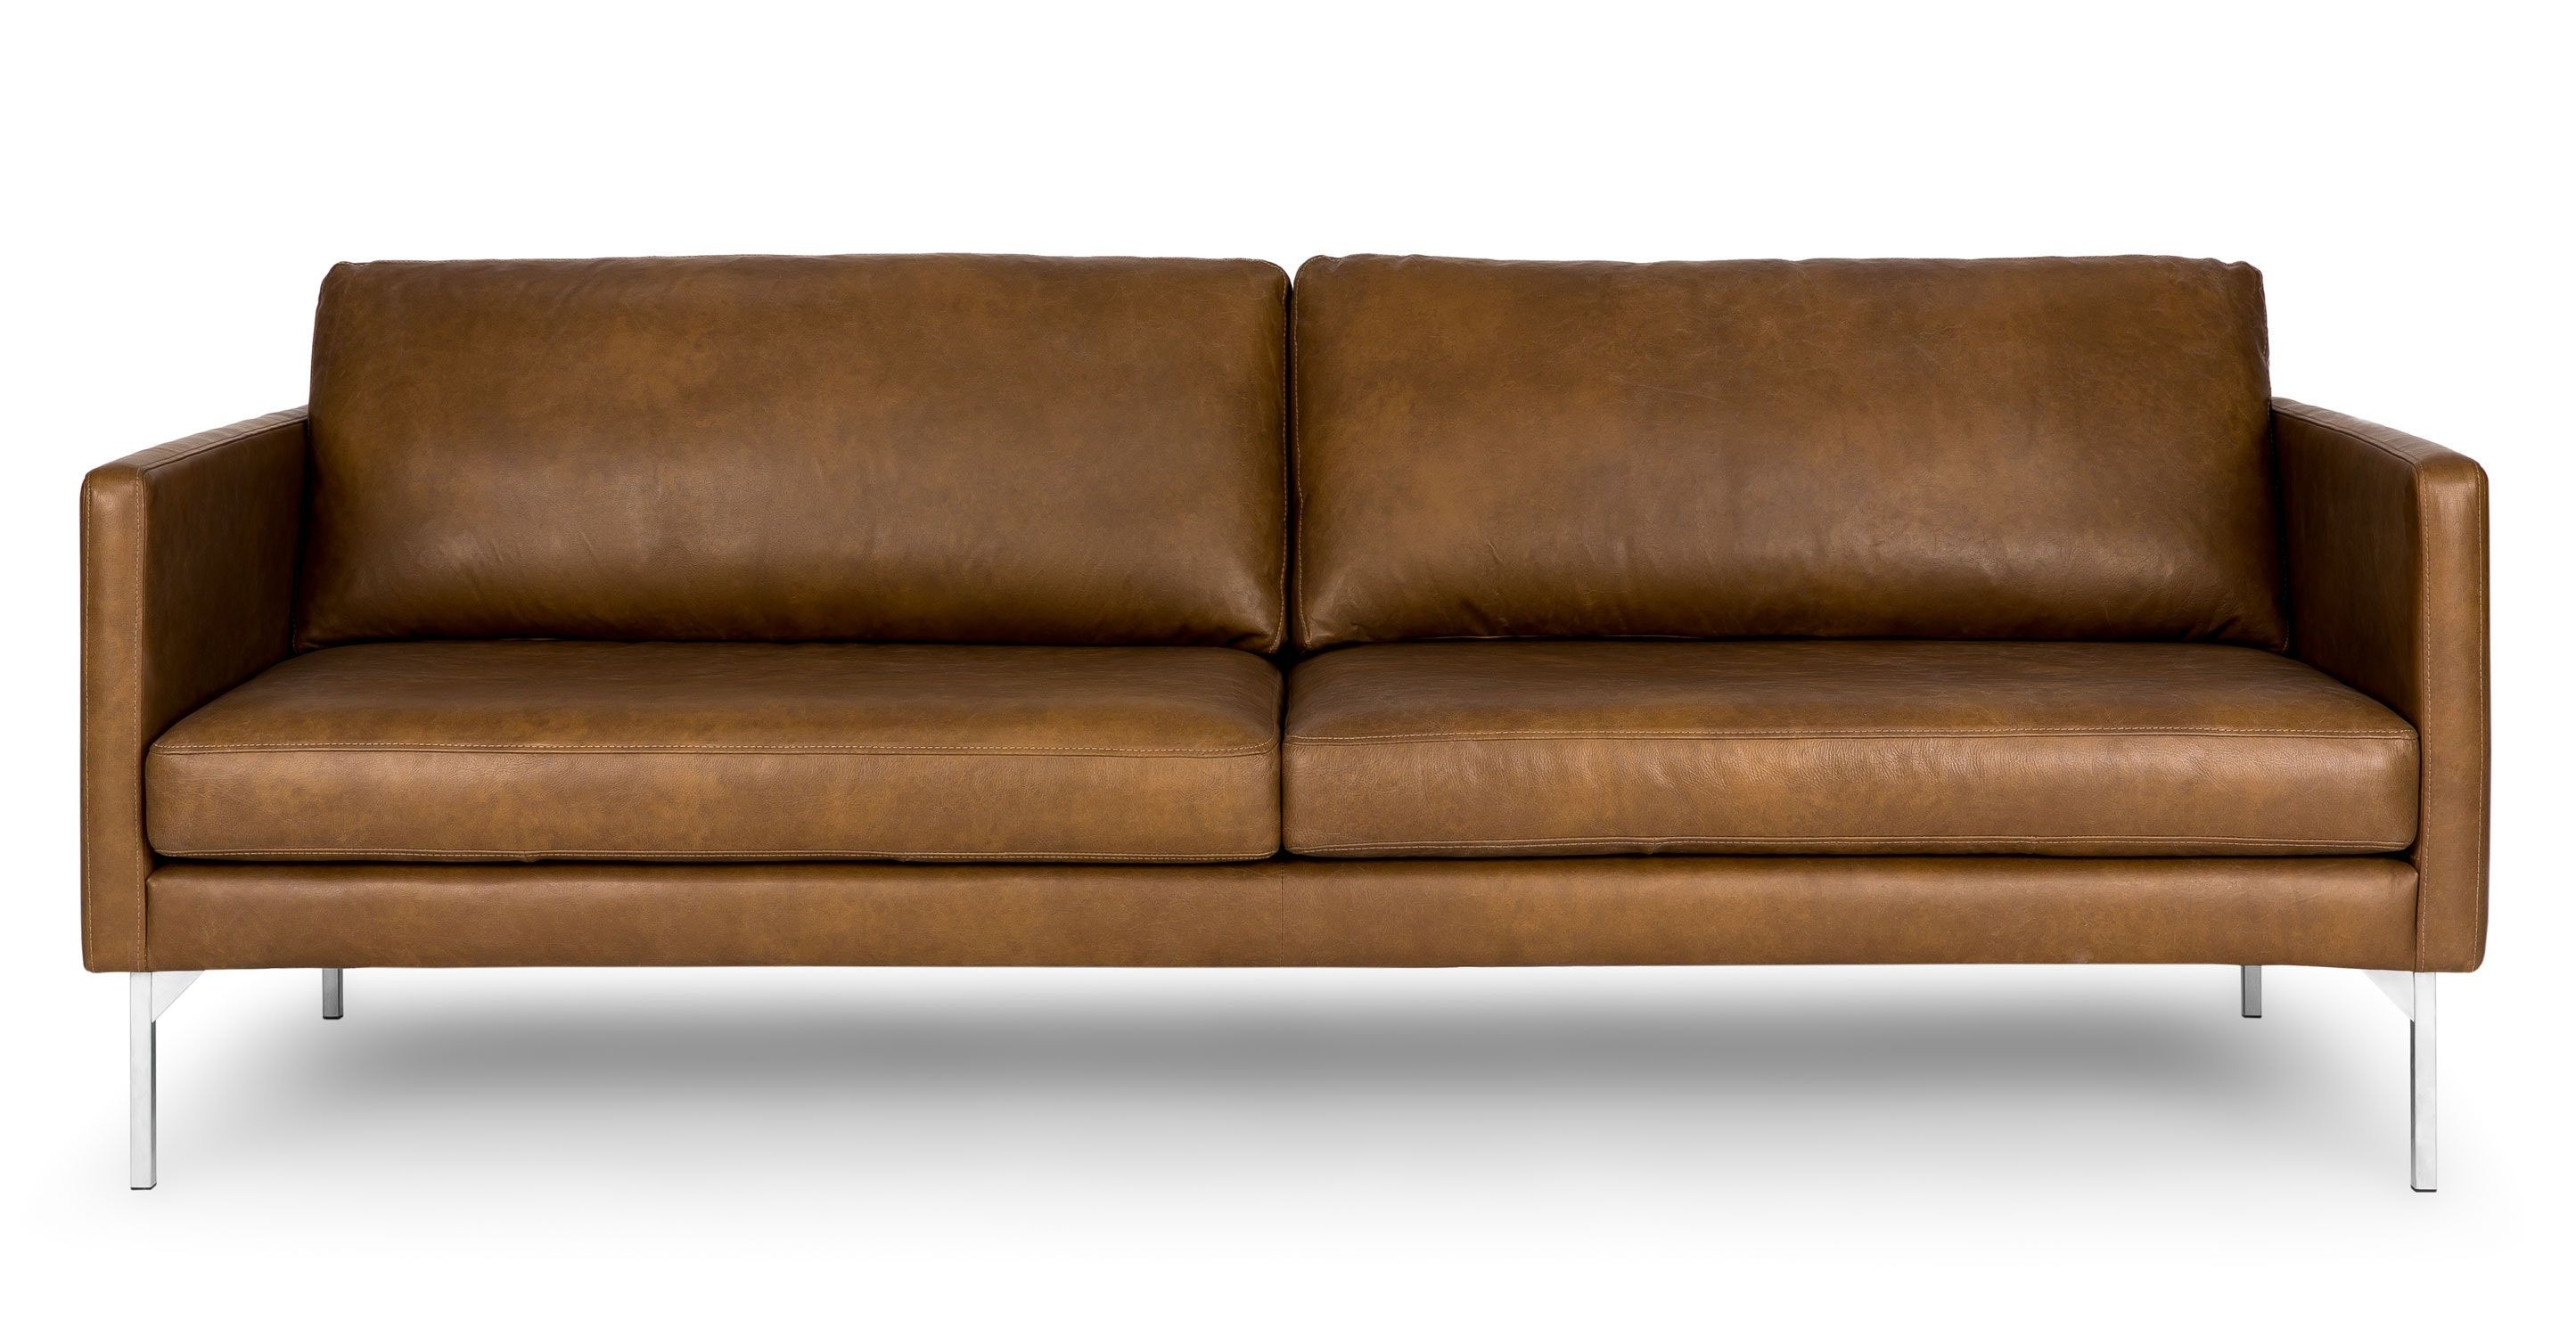 Echo Oxford Tan Sofa Style Type Contemporary Leather 3 Seat General Dimensions 32 H X 84 W 35 D Weight Lbs 103 Height 16 5 Depth